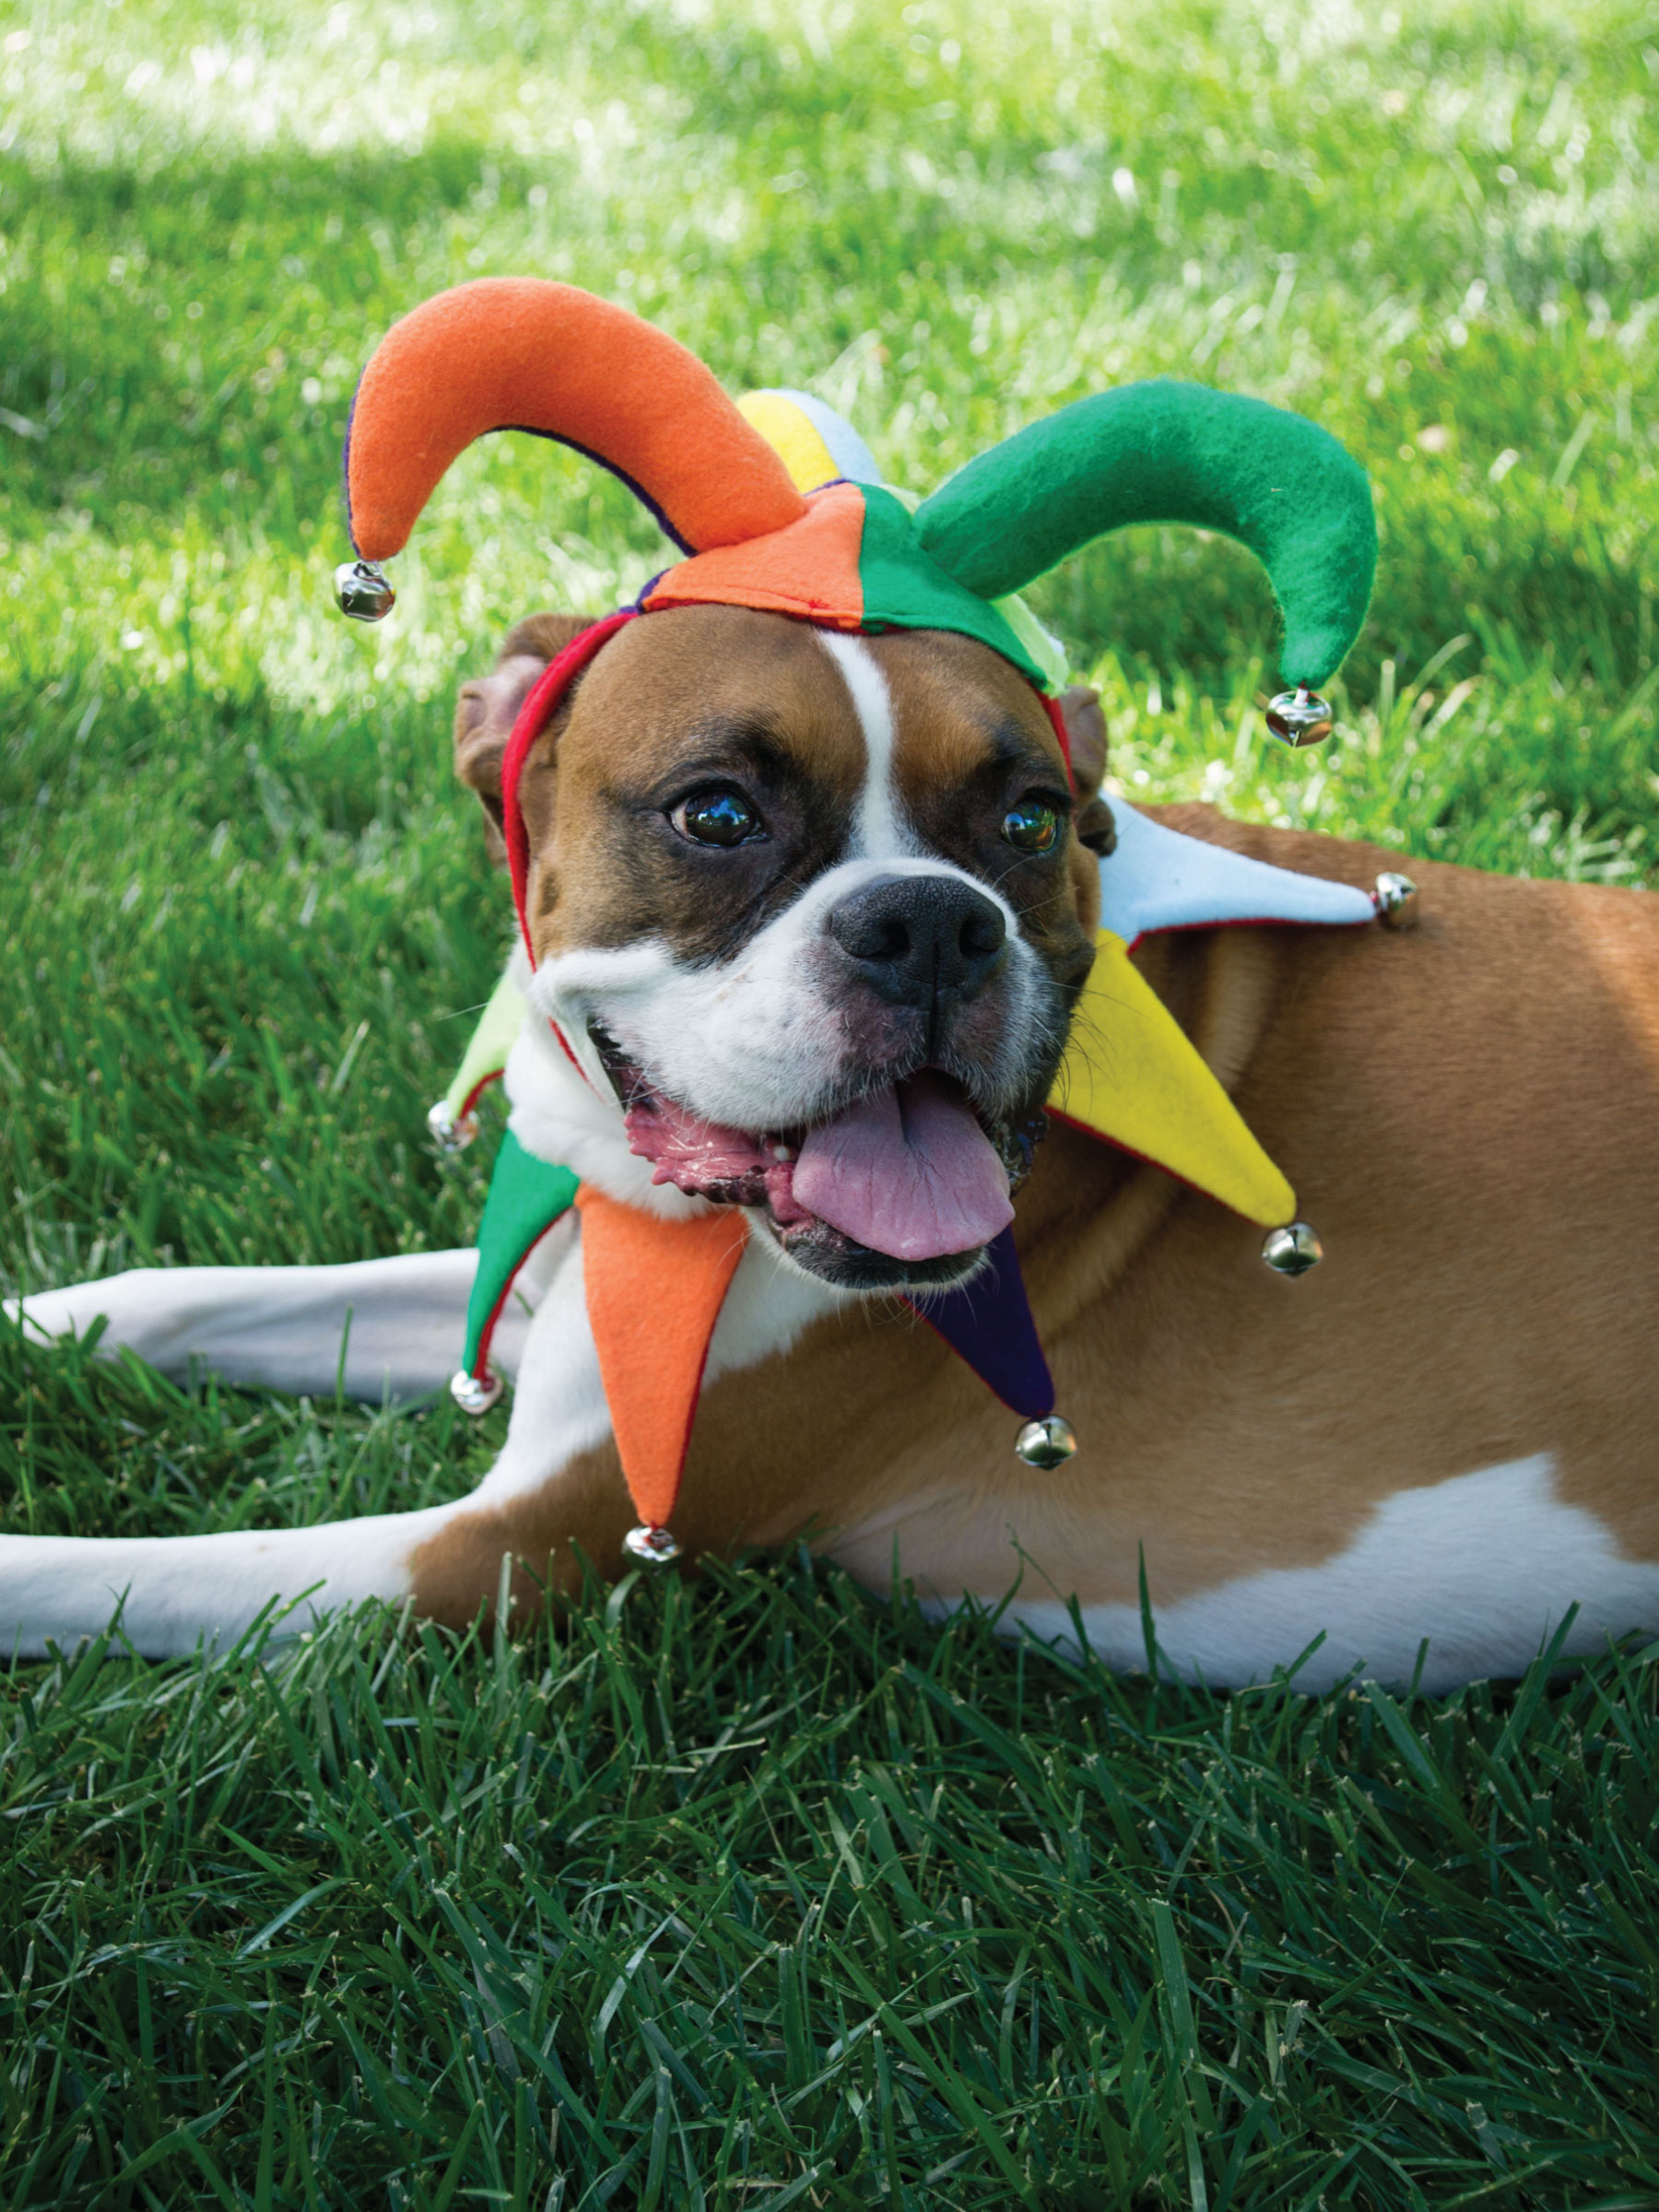 Dog's Jester Costume by Sam Henderson of Today's Nest for HGTV.